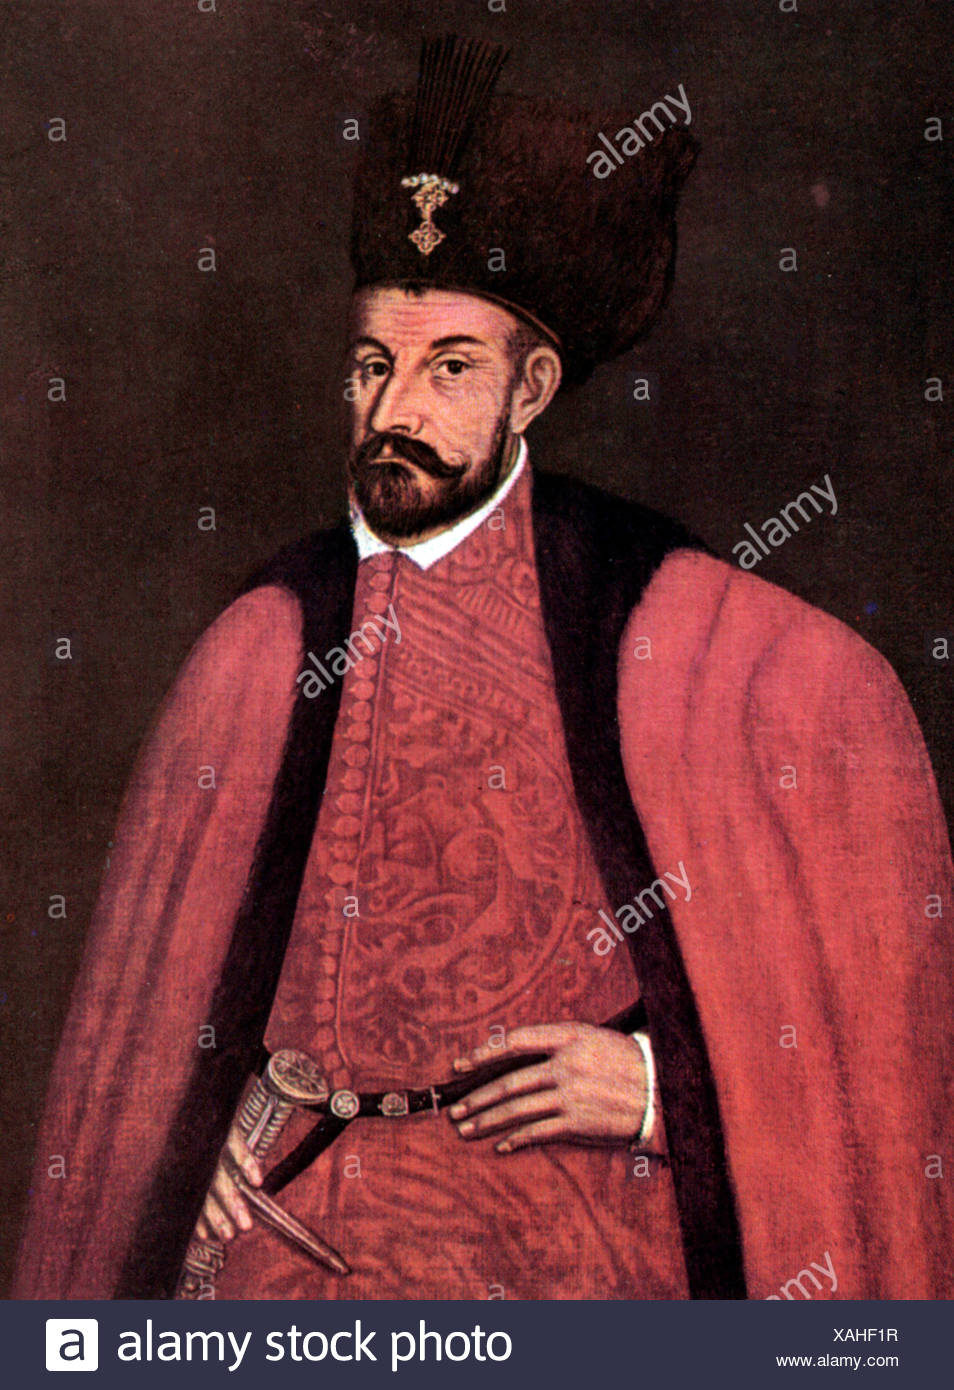 Stephen Bathory, 27.9.1533 - 12.12.1586, King of Poland 14.12.1575 - 12.12.1586, portrait, art postcard after painting, 1576, , Artist's Copyright has not to be cleared - Stock Image